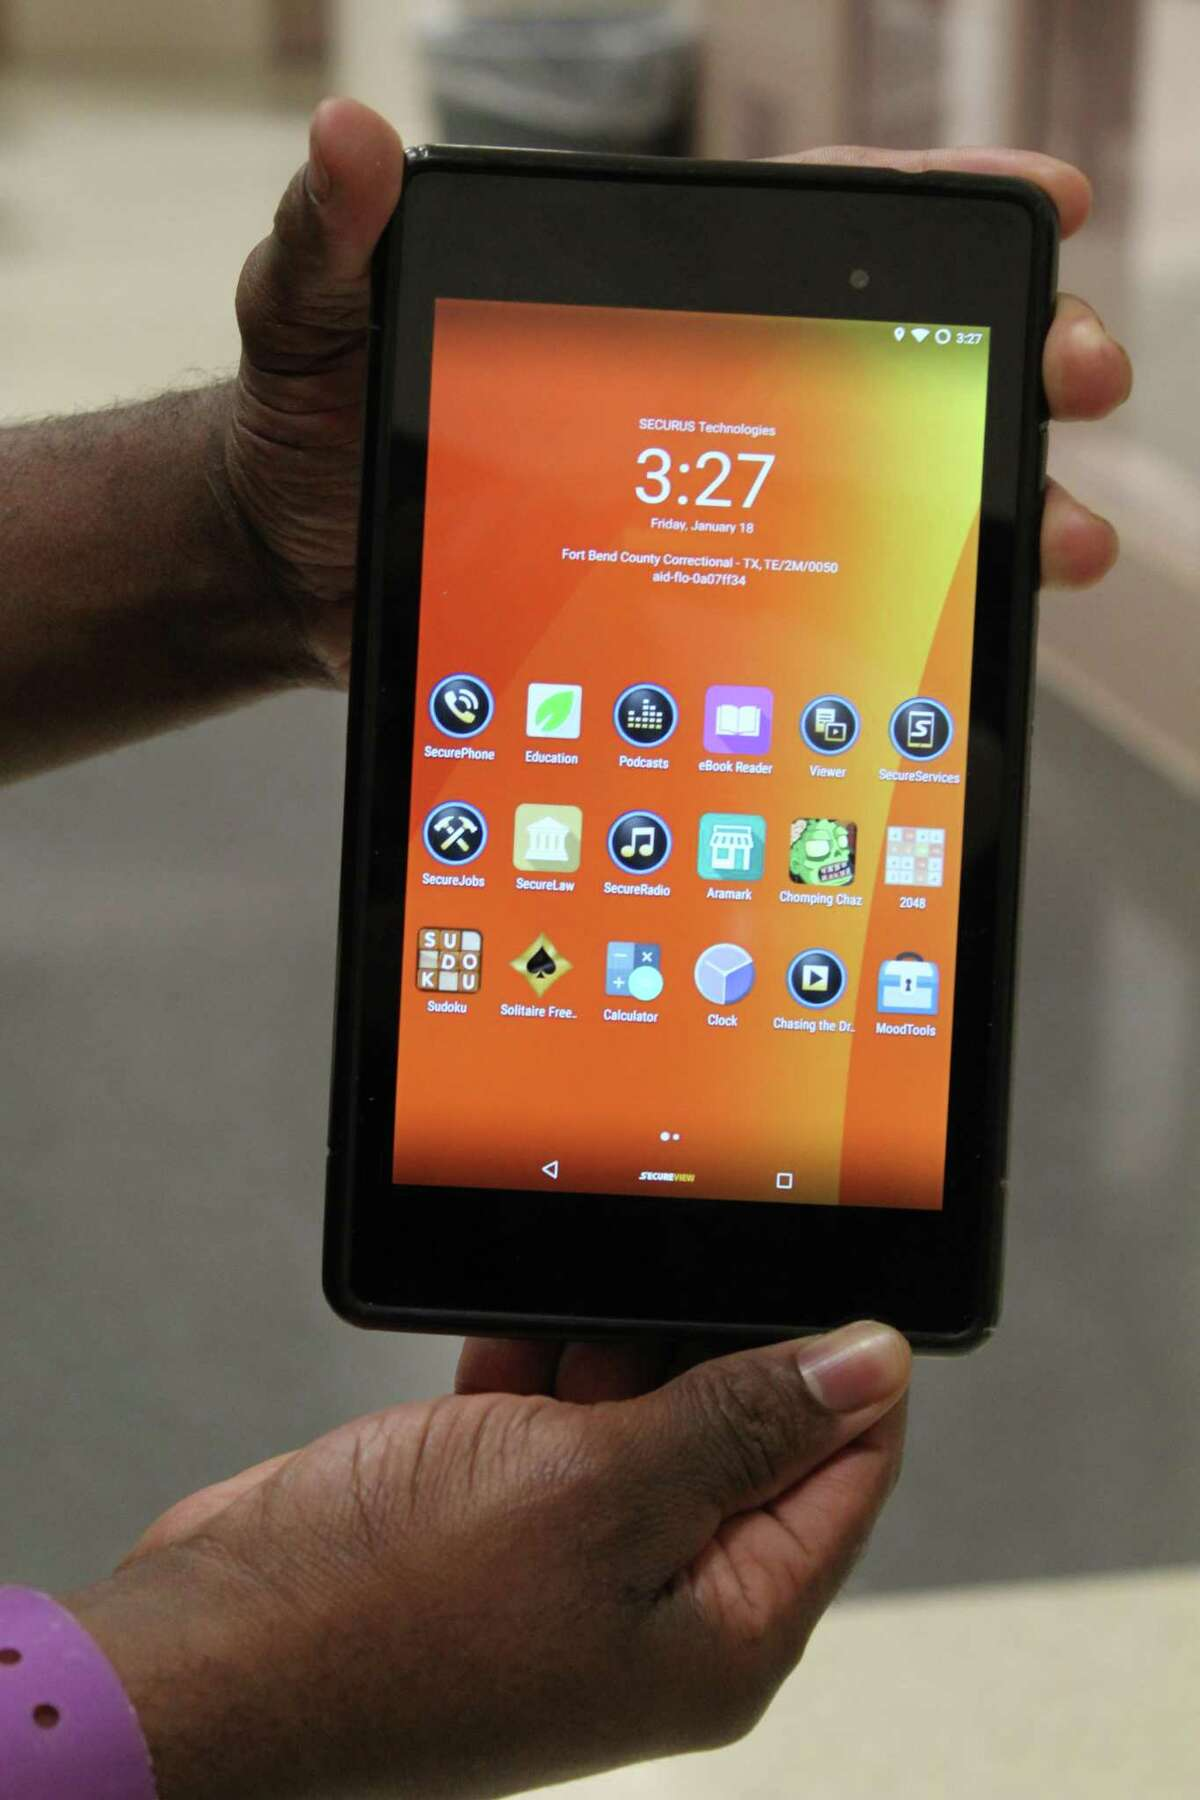 Small personal tablets provided by Securus Technology pre-loaded with a special app created by the Brazoria County Sheriff's Department's food vendor, Aramark, allows inmates to order snacks and other items from the jail commissary and send messages to jailers. Inmates can also read books and listen to pre-loaded podcasts among other things. The new program is designed to create a safer environment for jail staff and inmates, officials say.